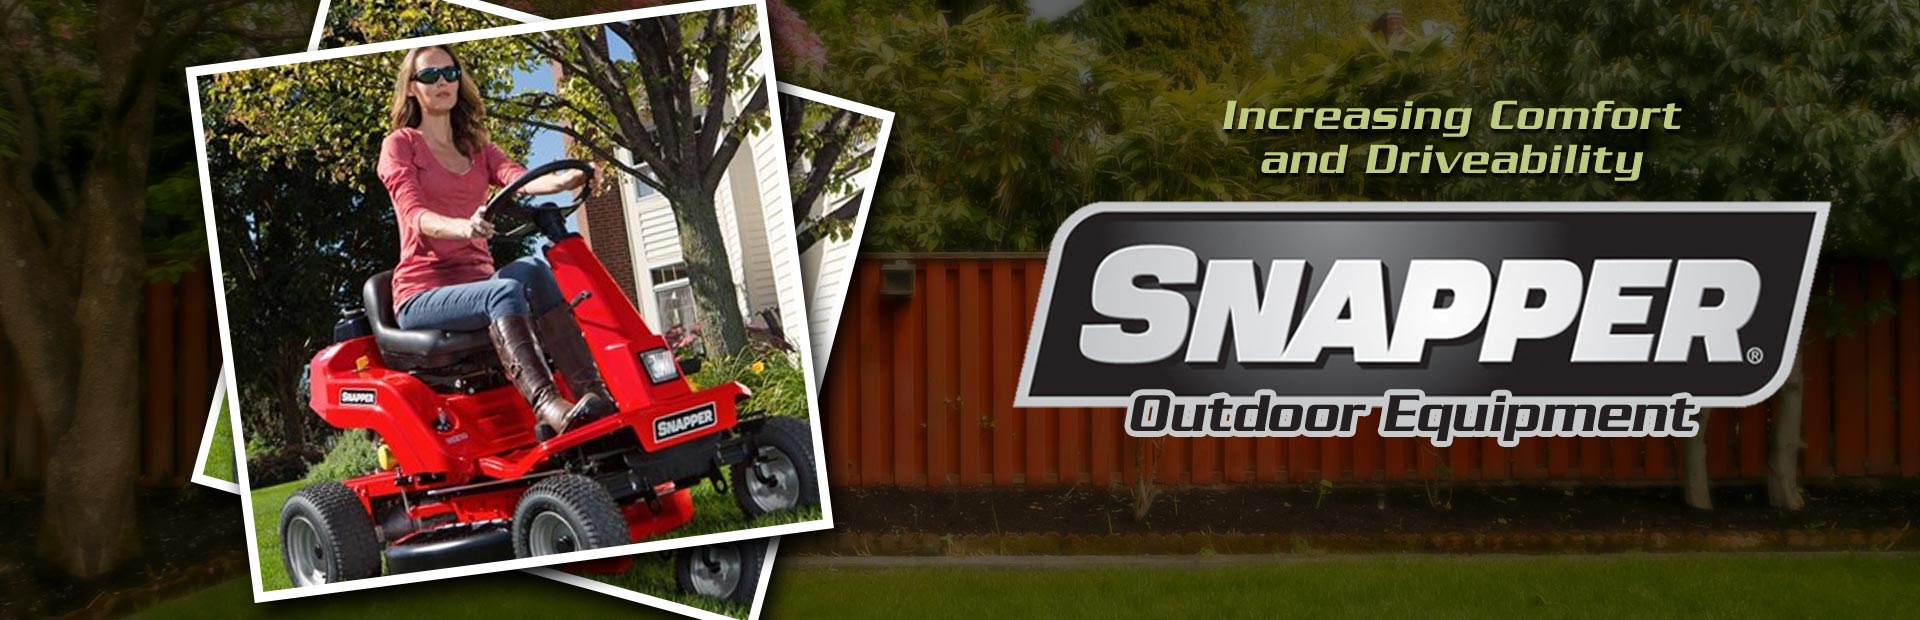 Snapper Outdoor Equipment: Click here to view the models.